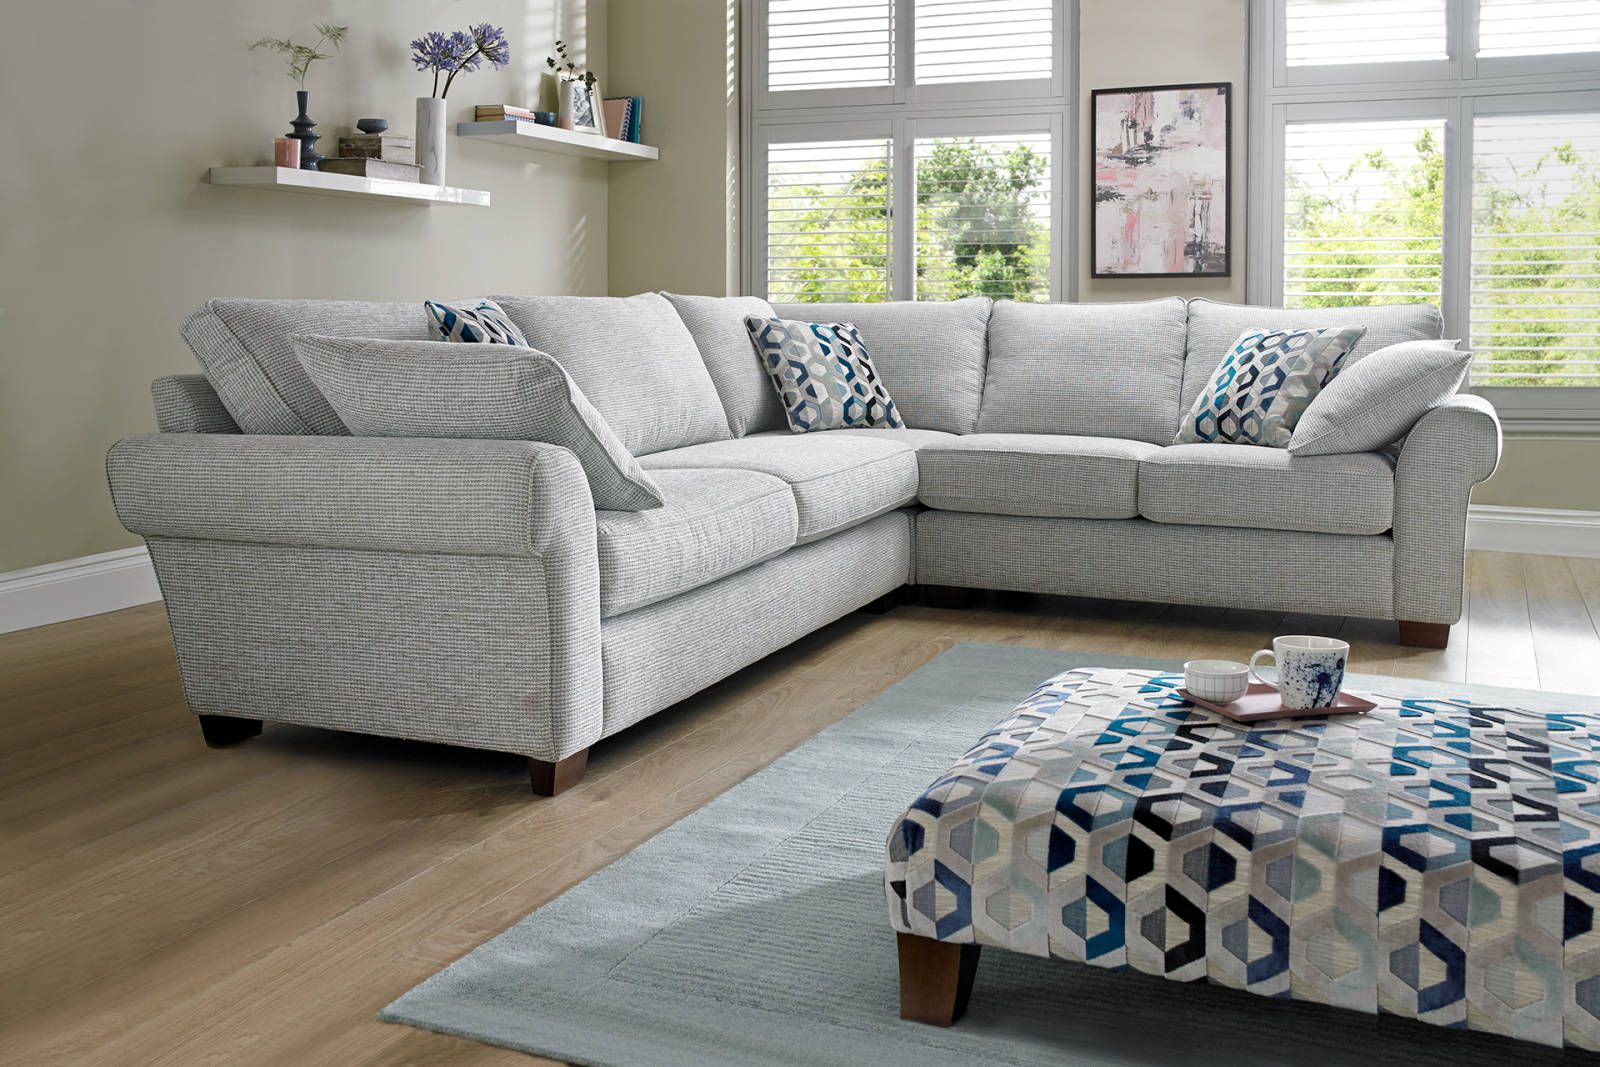 Sofology Online Support Rosie Sofology Sofas Beige Sofa Modular Sofa Fabric Sectional